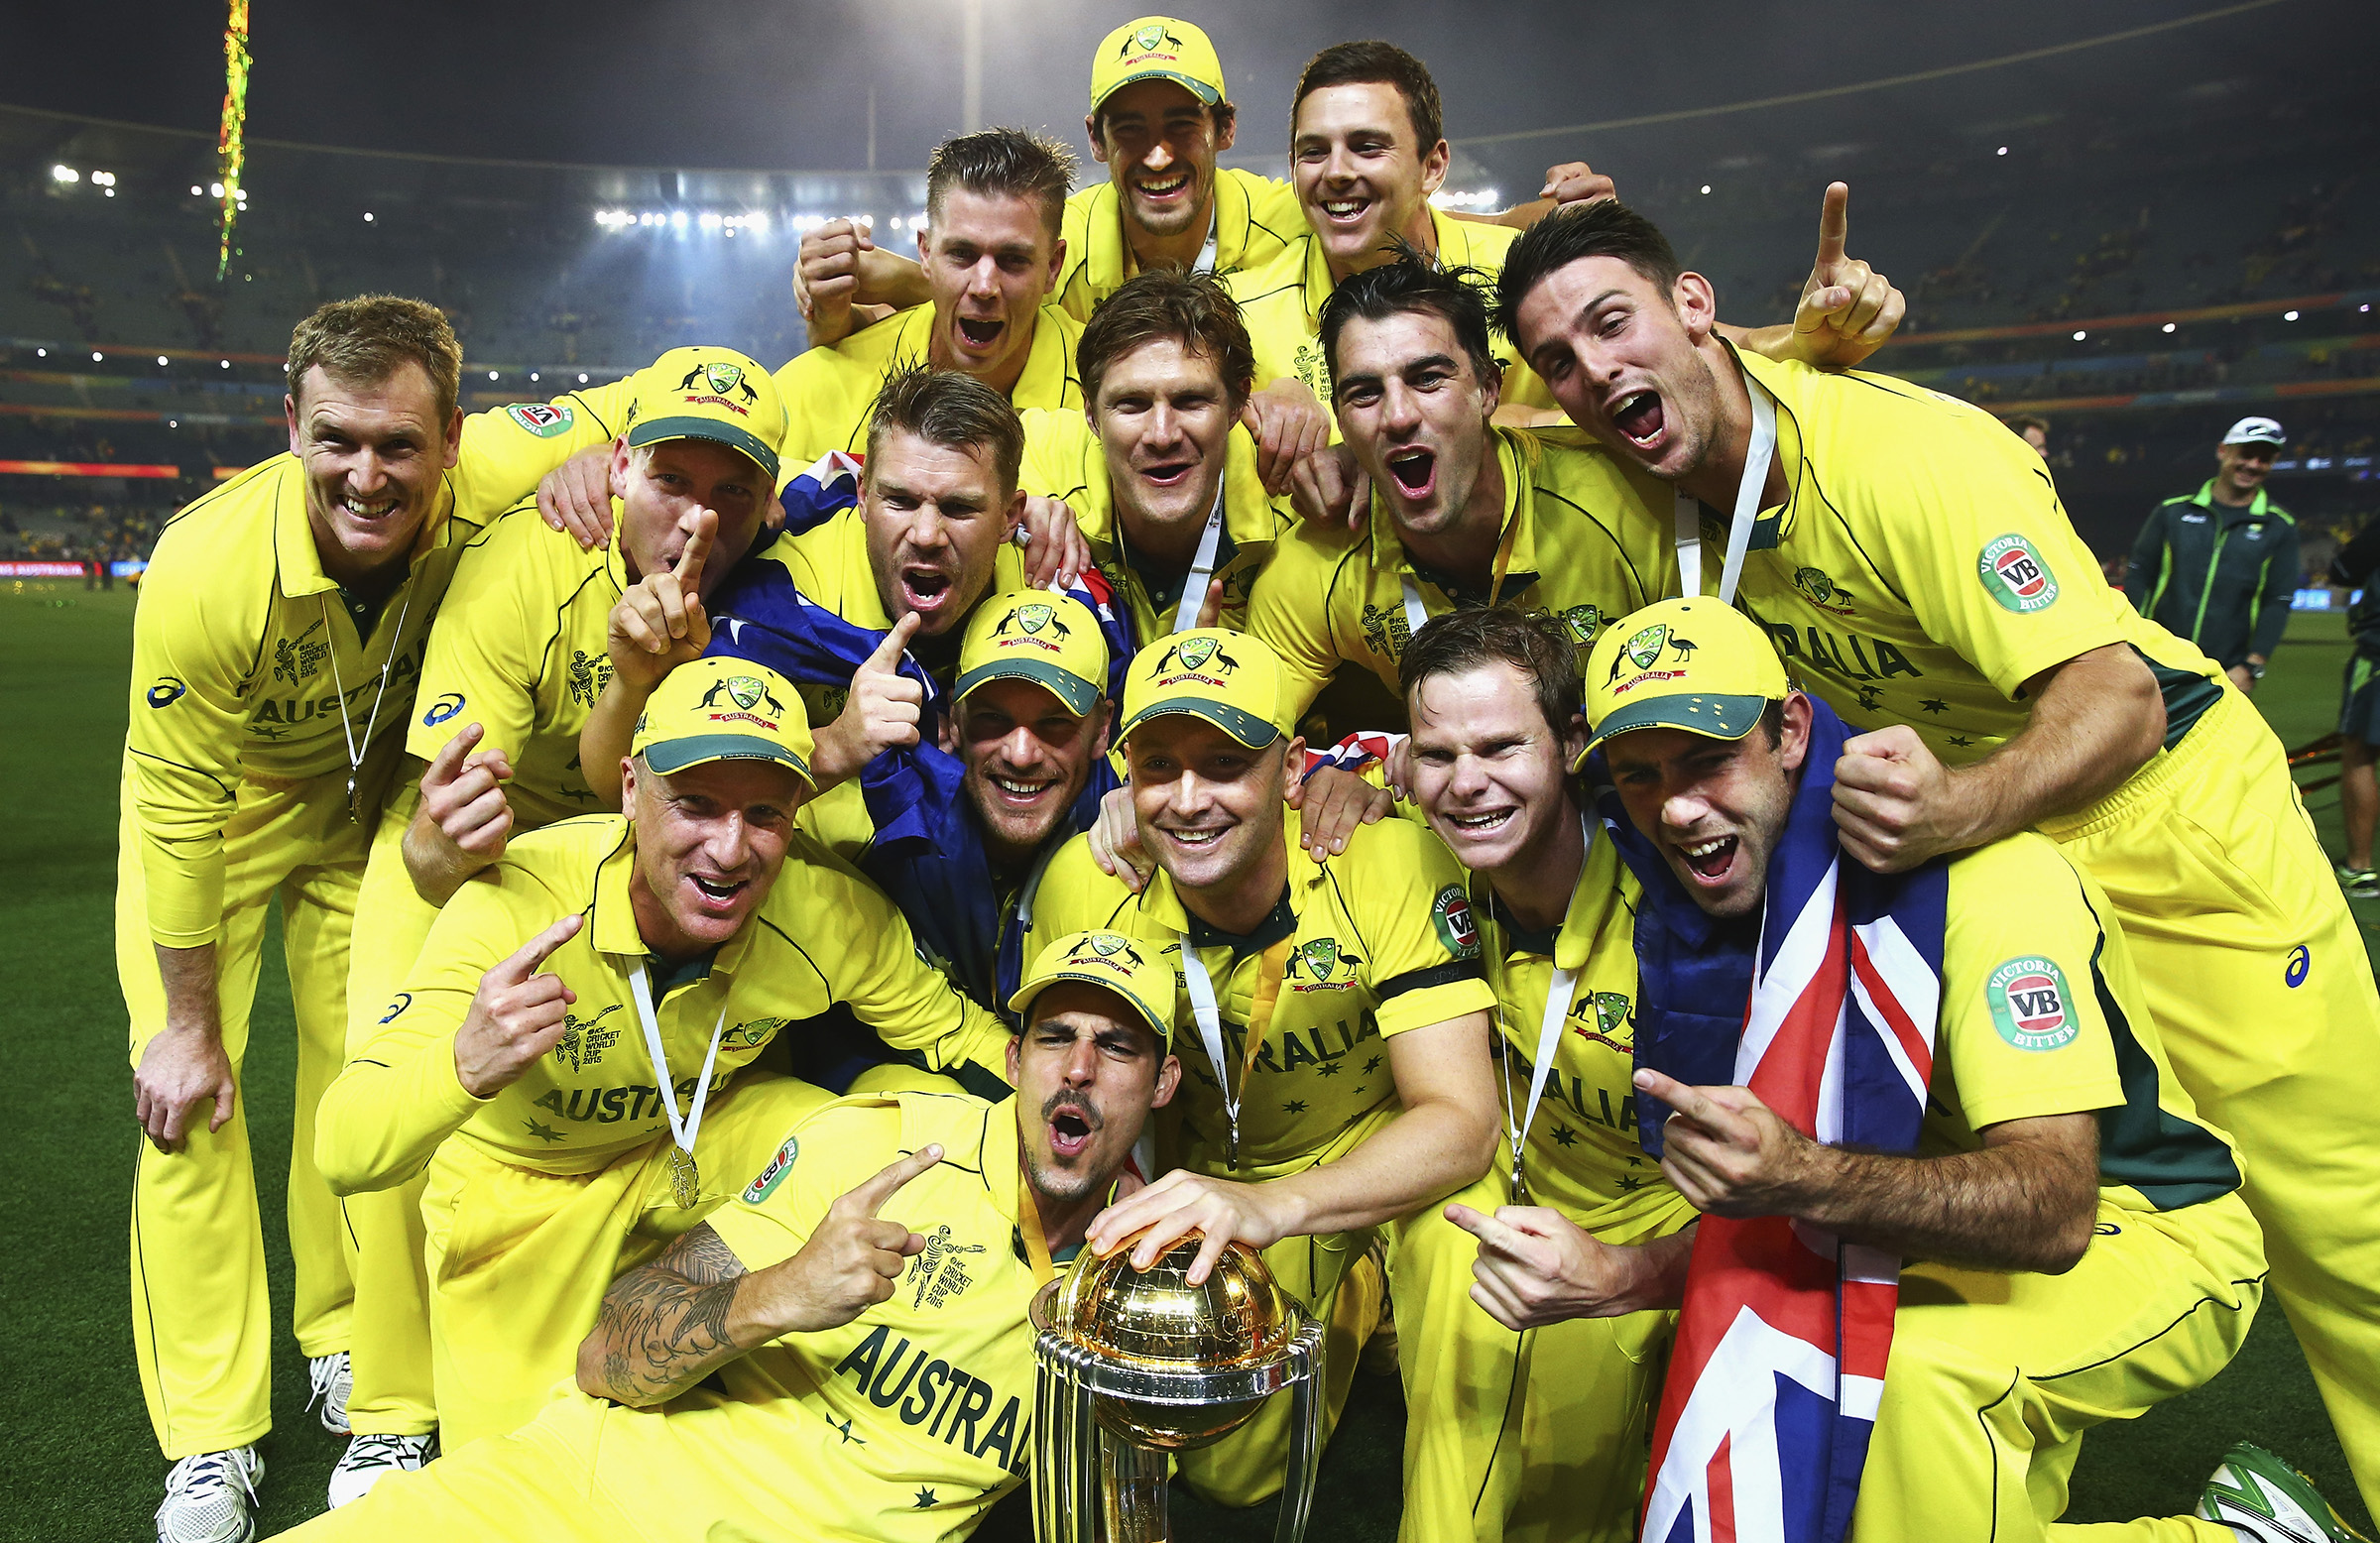 2019 ryder cup dates in Australia